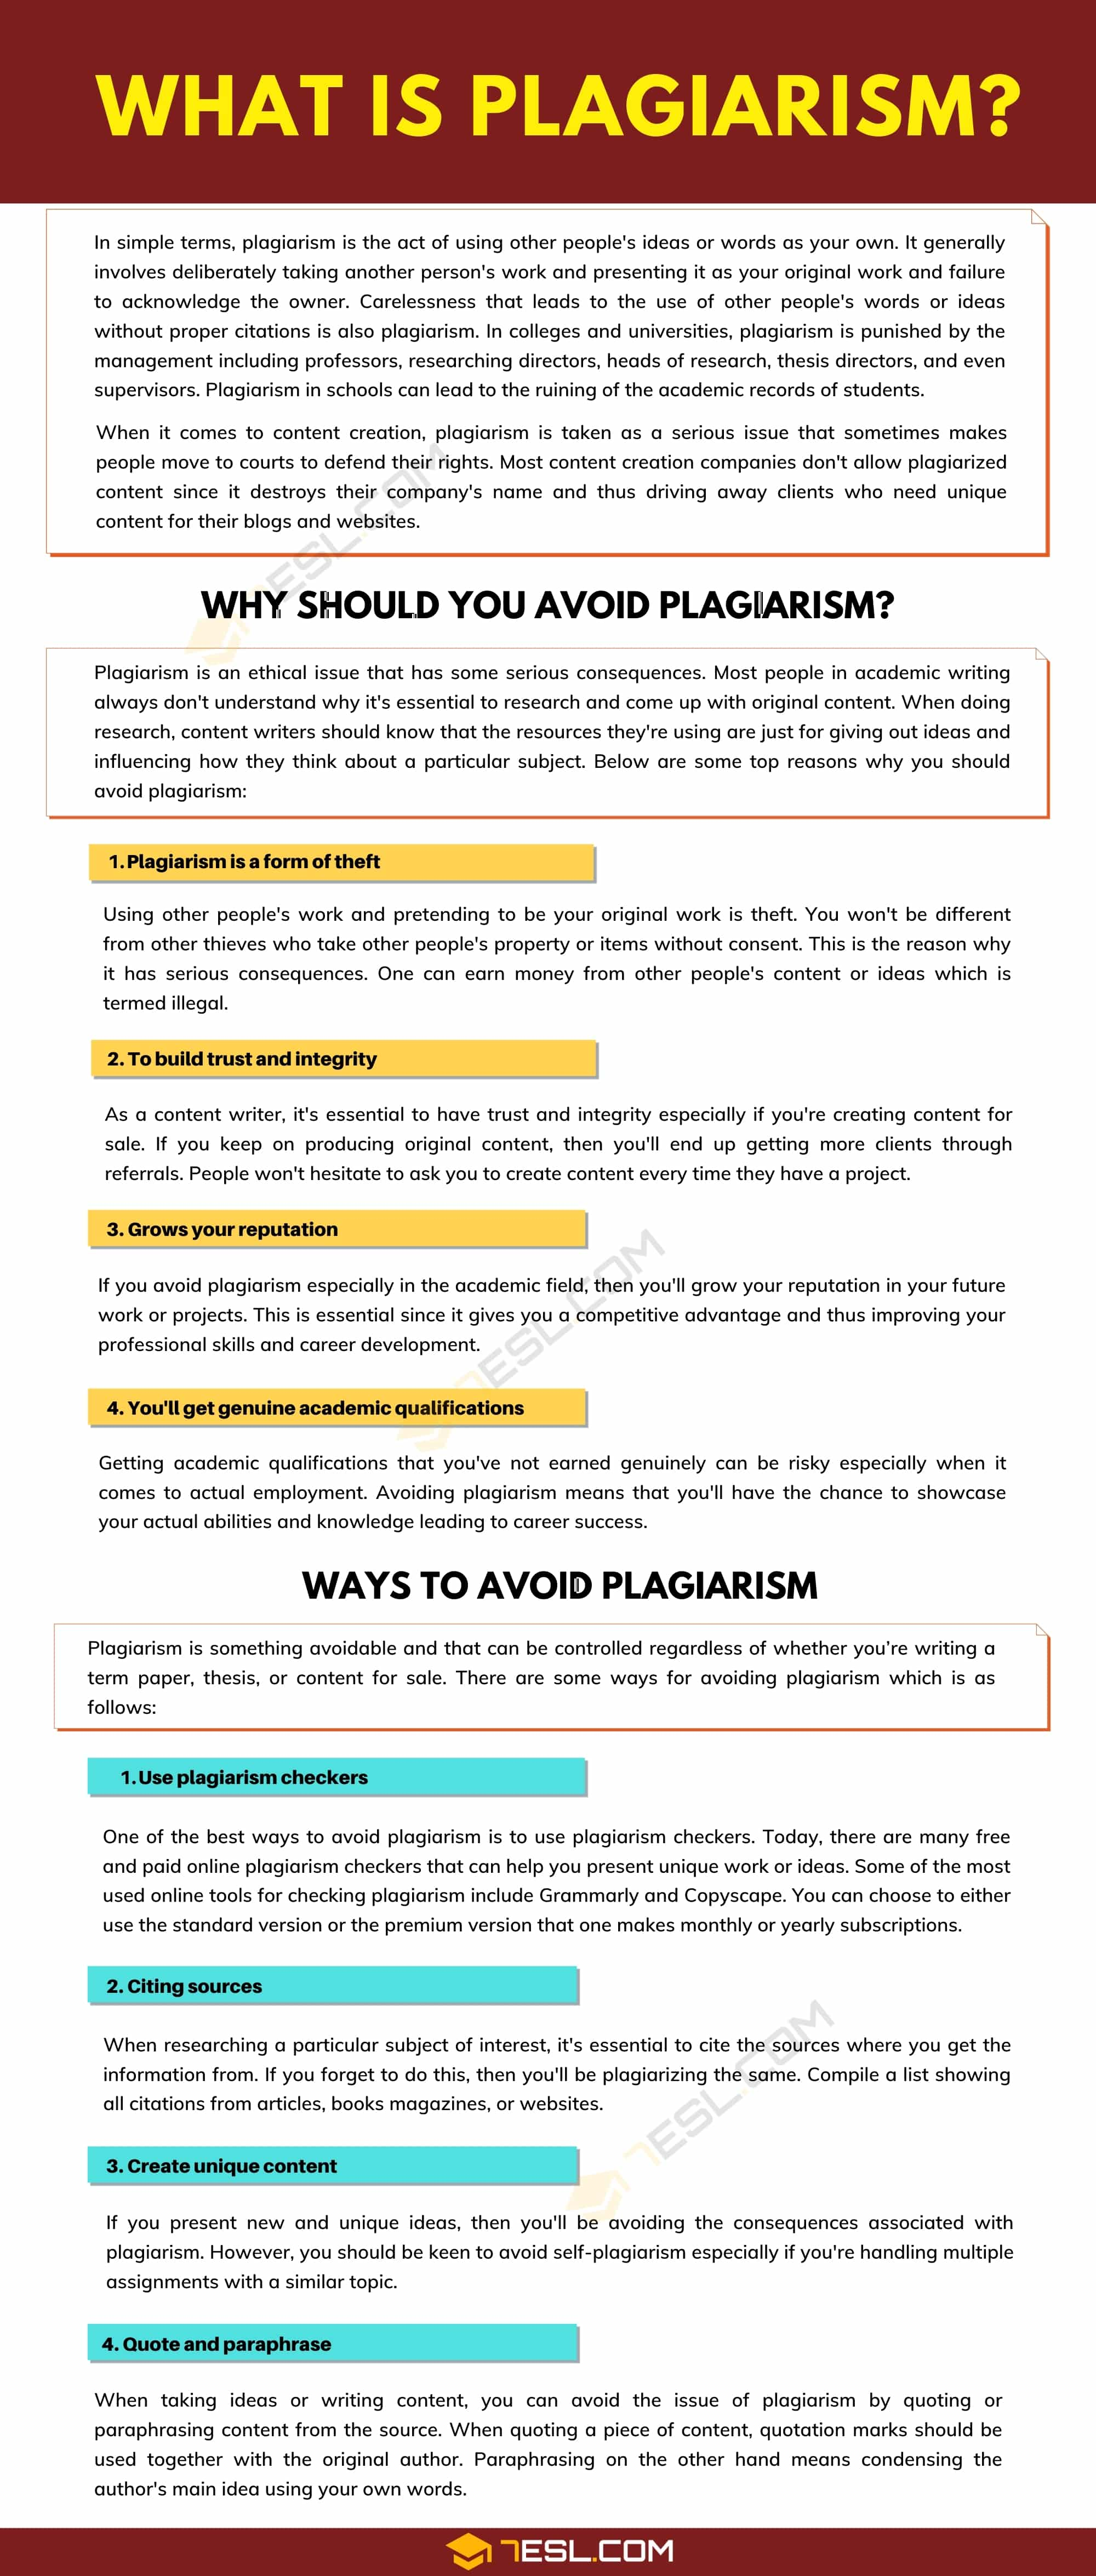 What Is Plagiarism? | Definition & Useful Tips to Avoid Plagiarism